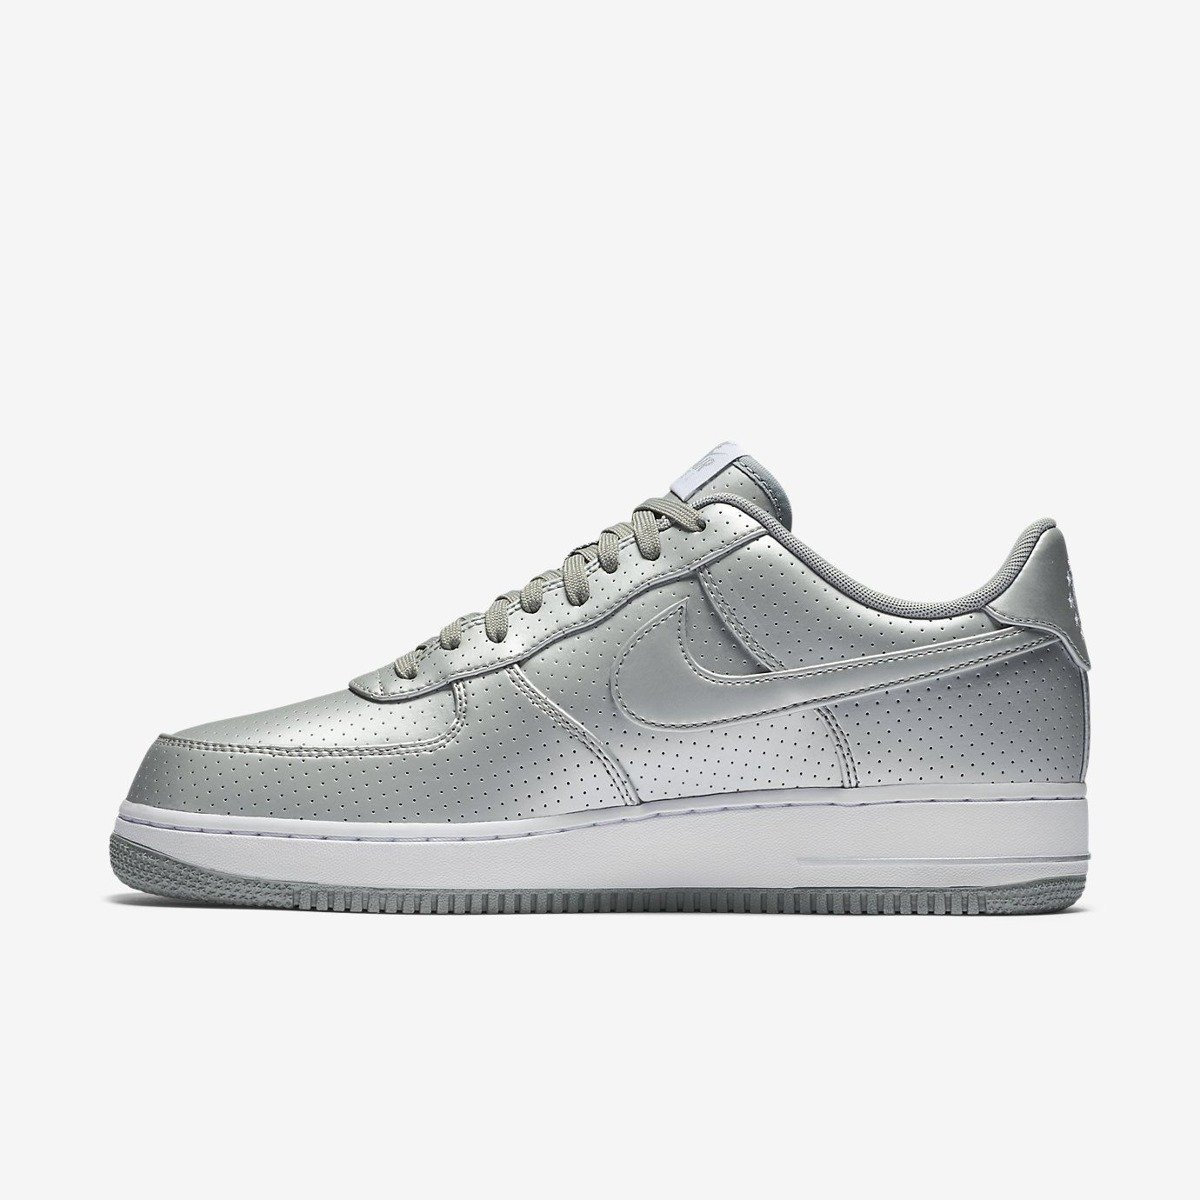 Nike Air Force 1 High '07 LV8 882096 200 Basketo.pl